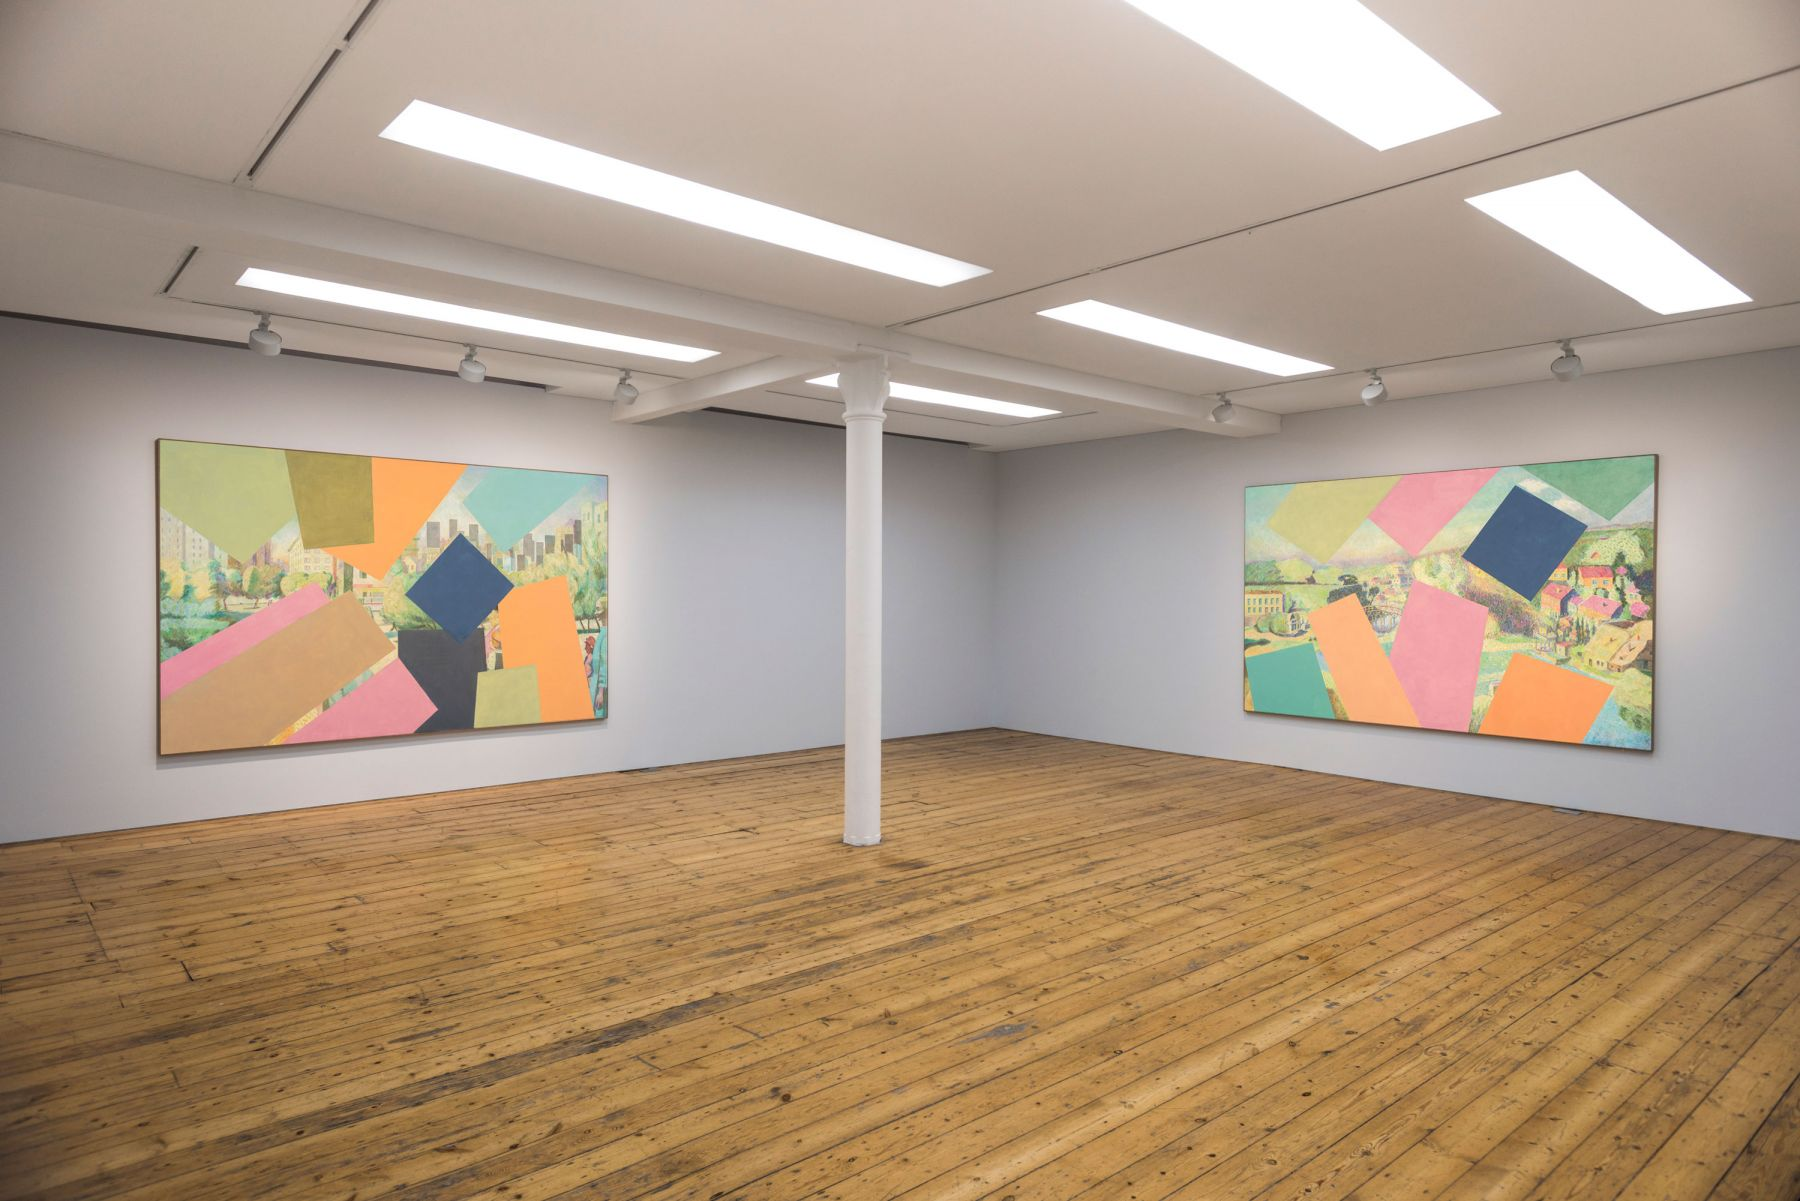 installation view sprovieri, london 2017